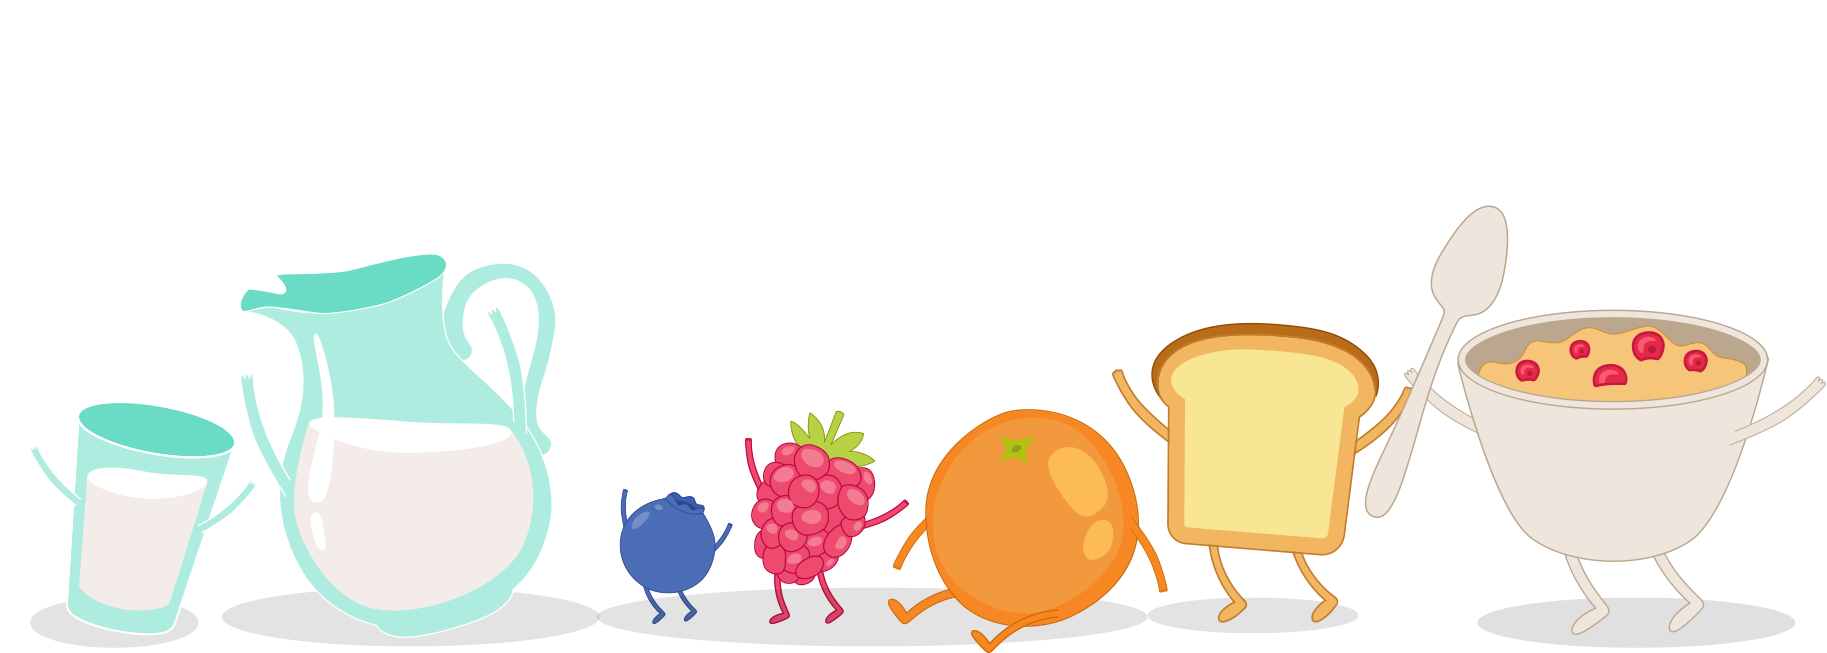 Fruits clipart cereal. Breakfast with fruit daifressh